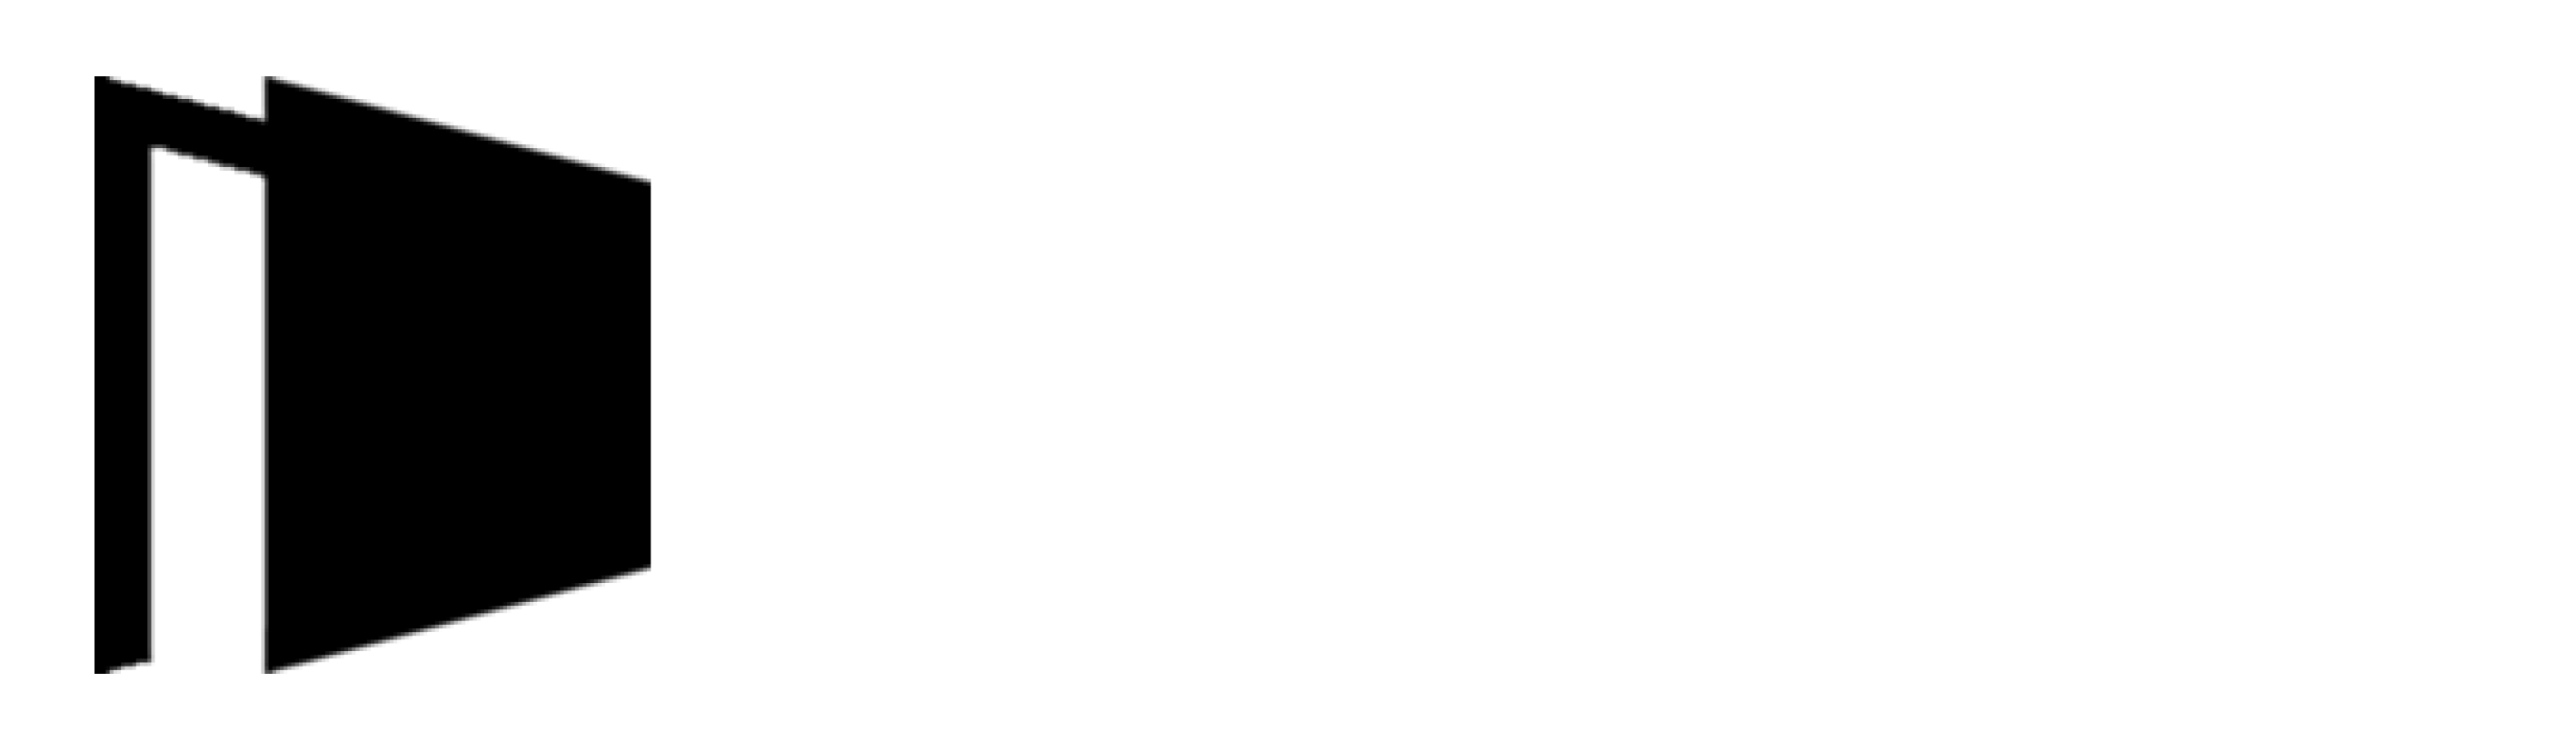 LITUS – IT & PC Service Bensheim